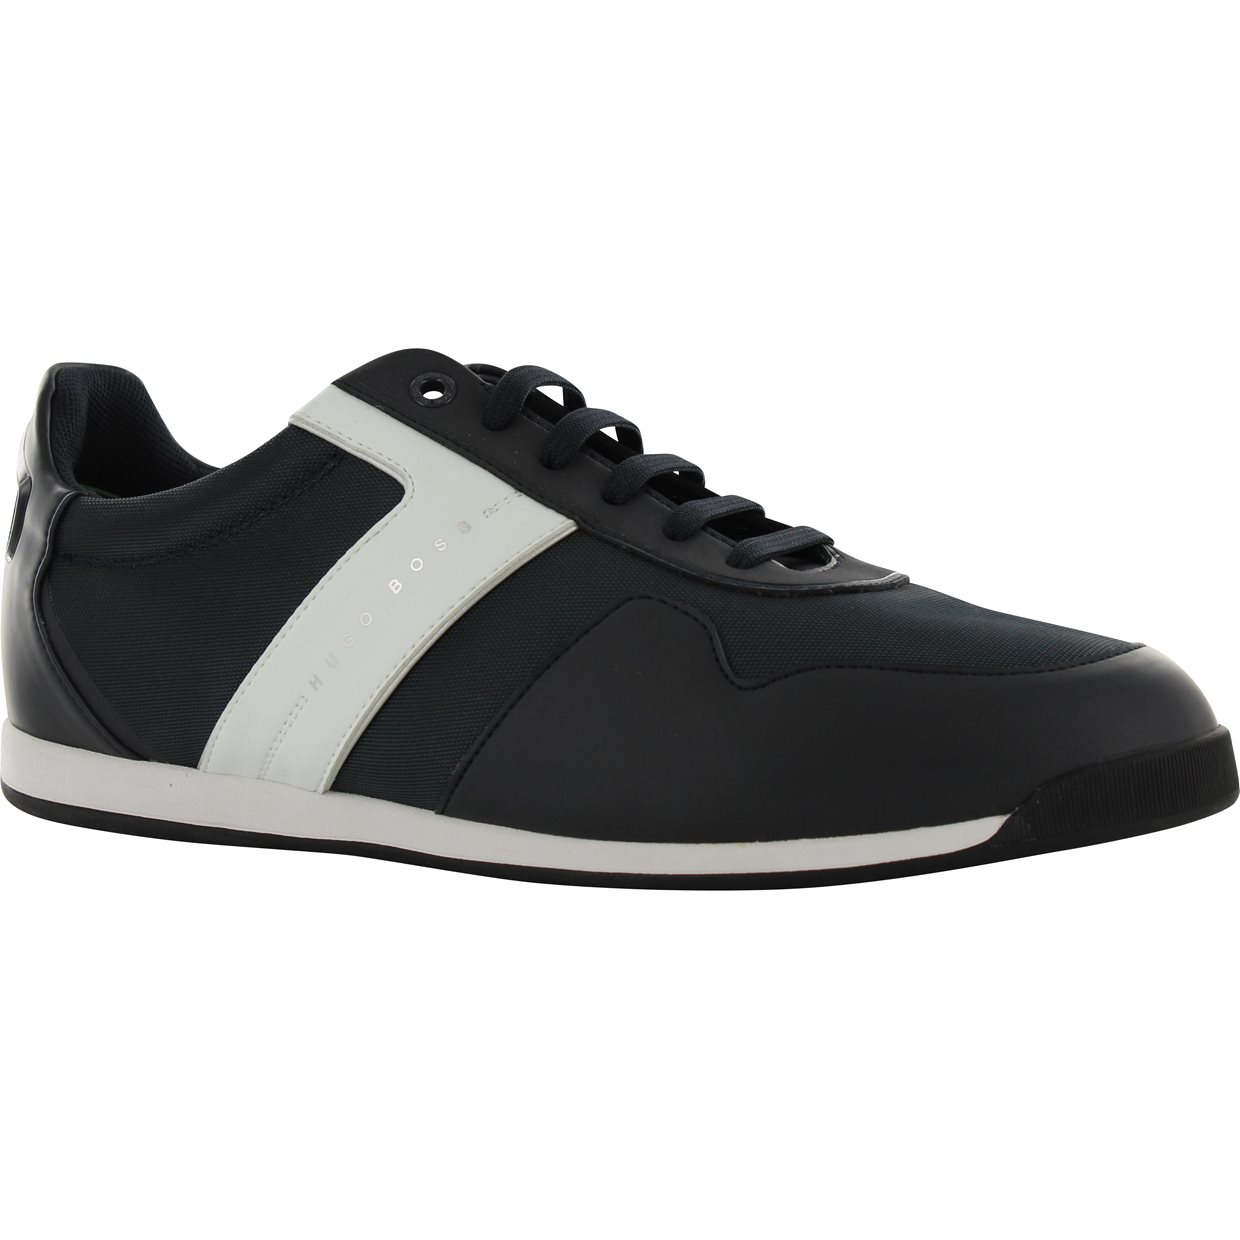 hugo boss shoes hkd to rmb rate